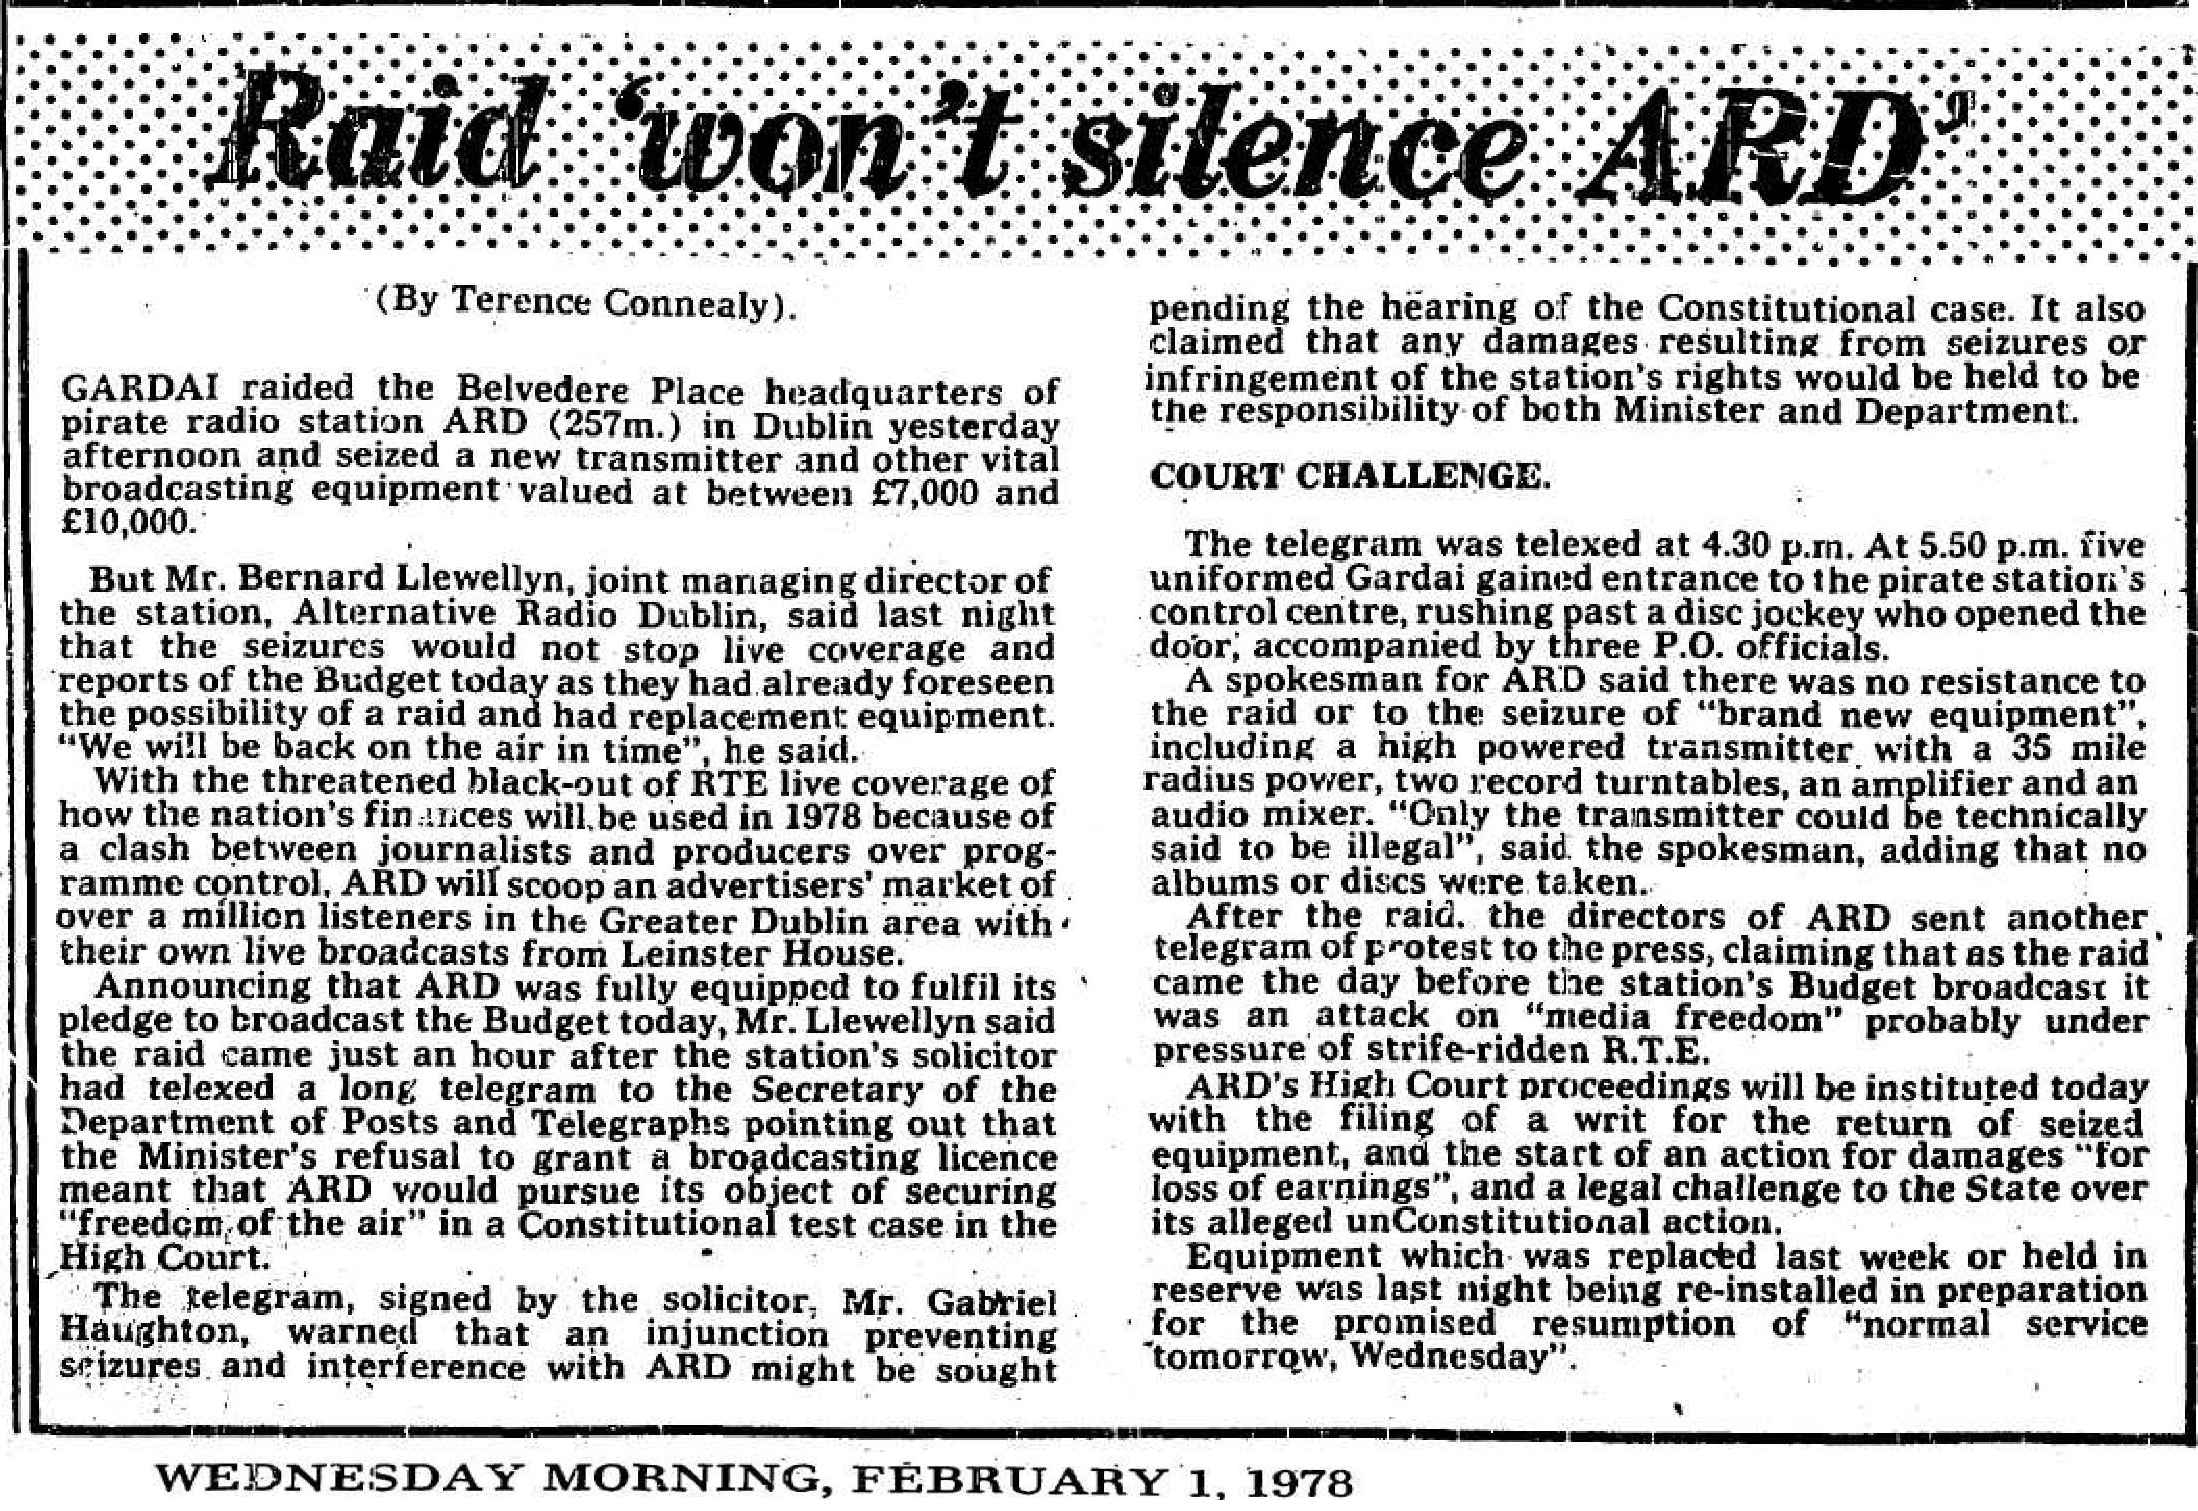 Raid 'won't silence ARD' was a newspaper headline from The Cork Examiner dated February 1st 1978